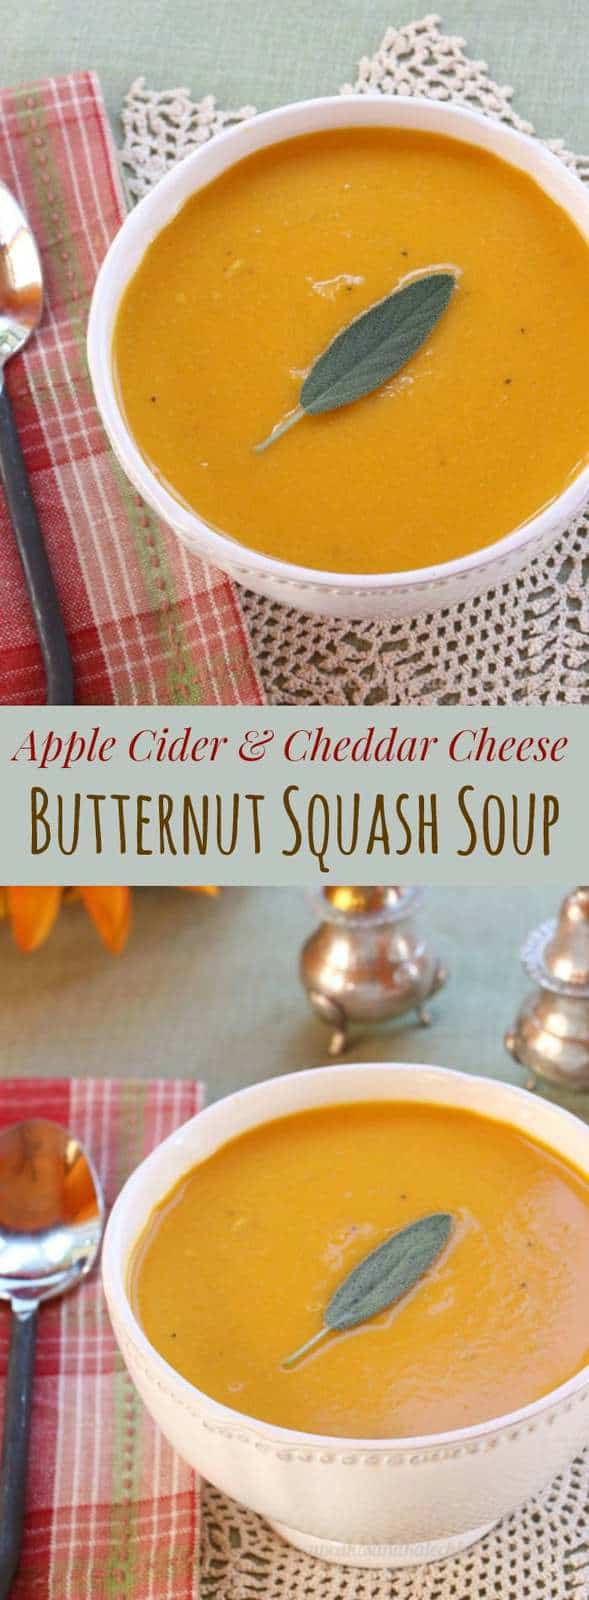 Apple Cider and Cheddar Cheese Butternut Squash Soup - a creamy autumn soup recipe